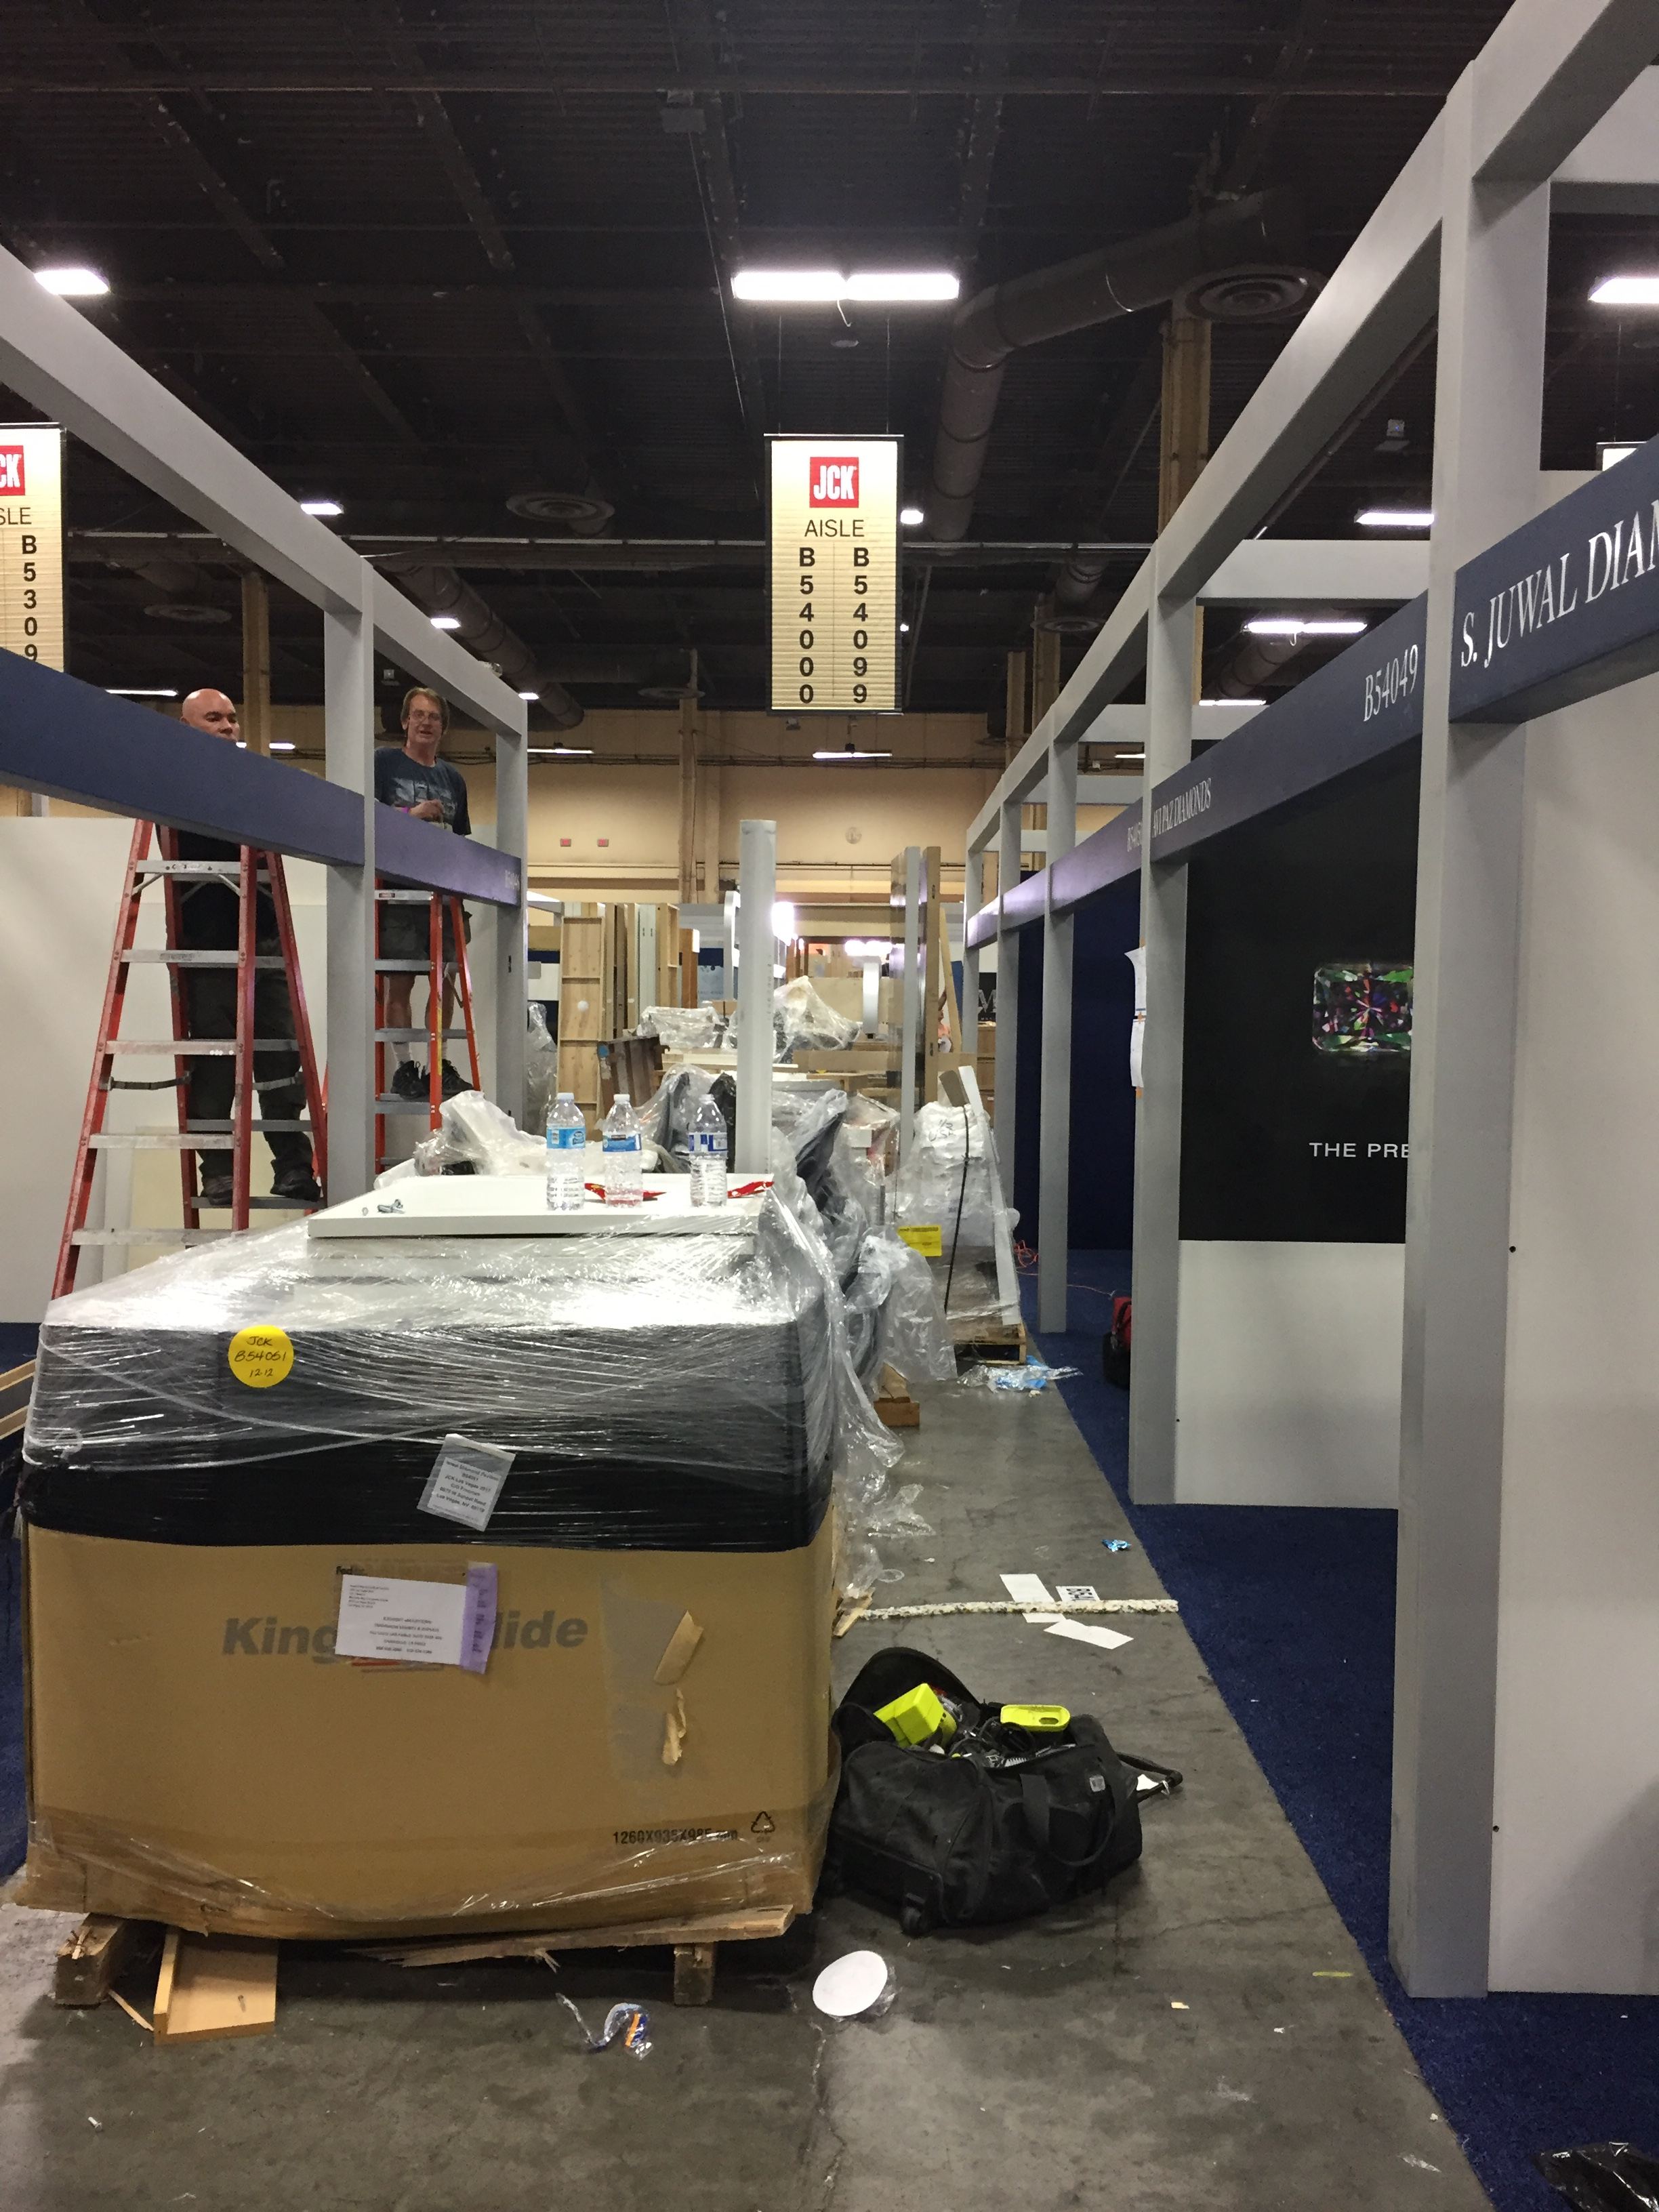 Reviewing the exhibit floor for carpet and electrical before installing booth